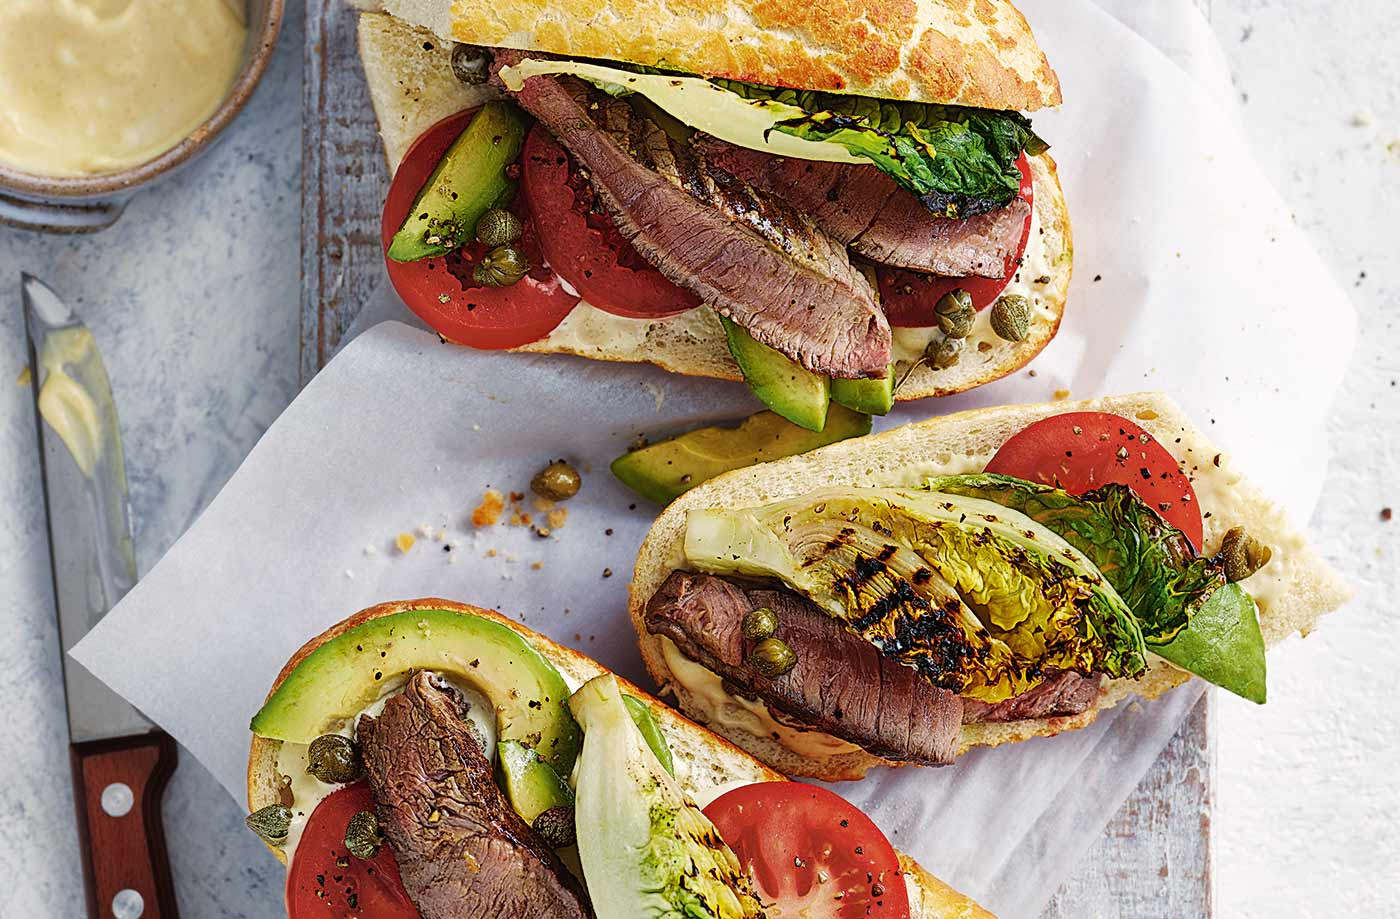 Griddled steak and charred Little Gem sandwiches recipe